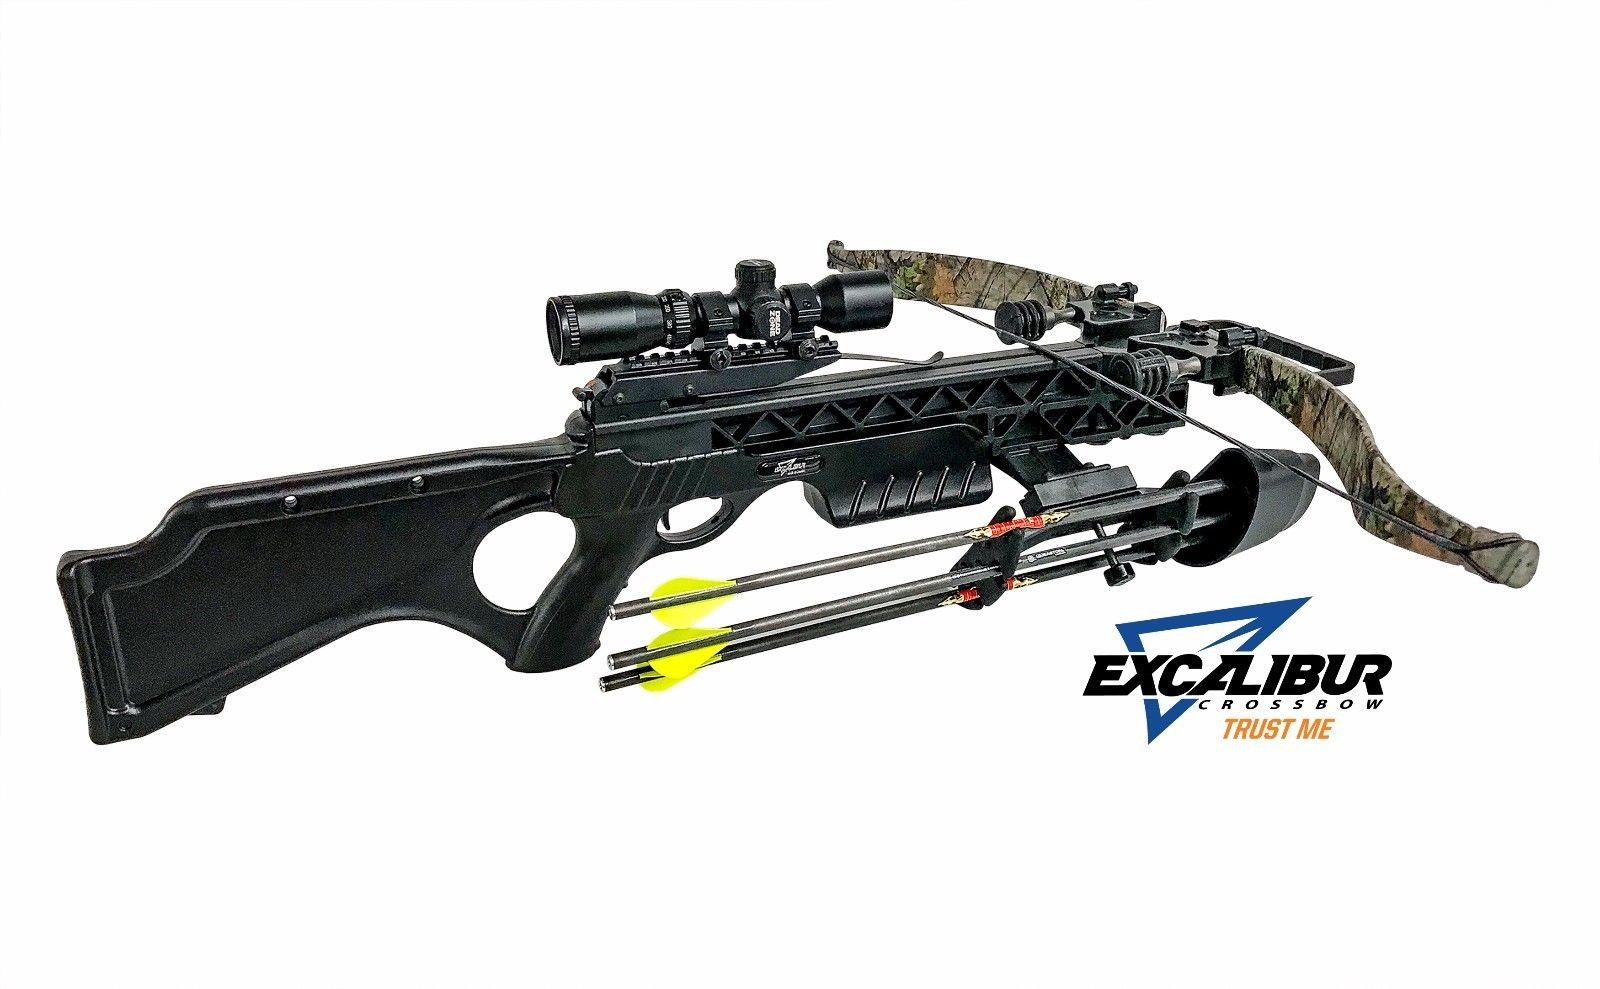 Excalibur MATRIX GRIZZLY BLACK SHADOW NEW 2018 DEADZONE PACKAGE #E73314